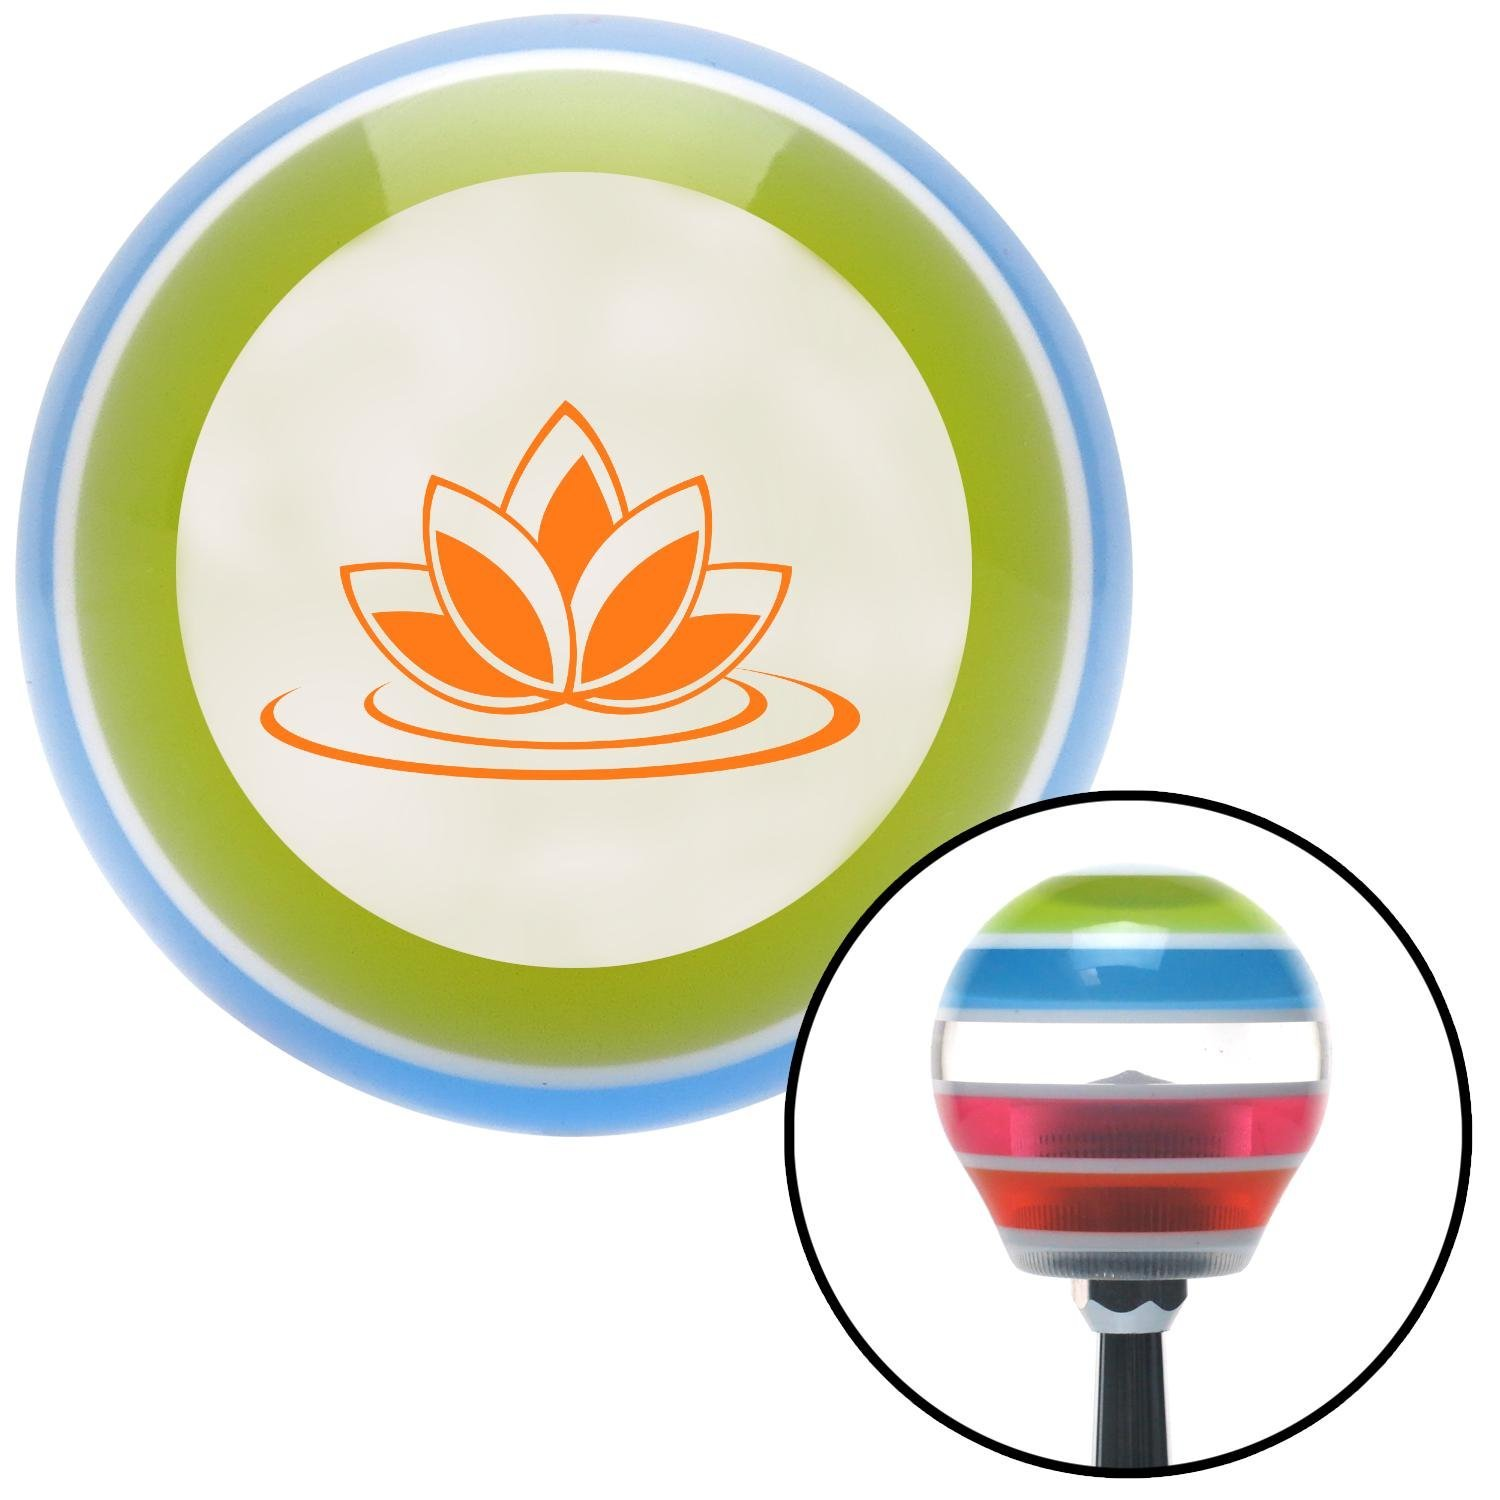 Orange Flower on Water American Shifter 135399 Stripe Shift Knob with M16 x 1.5 Insert